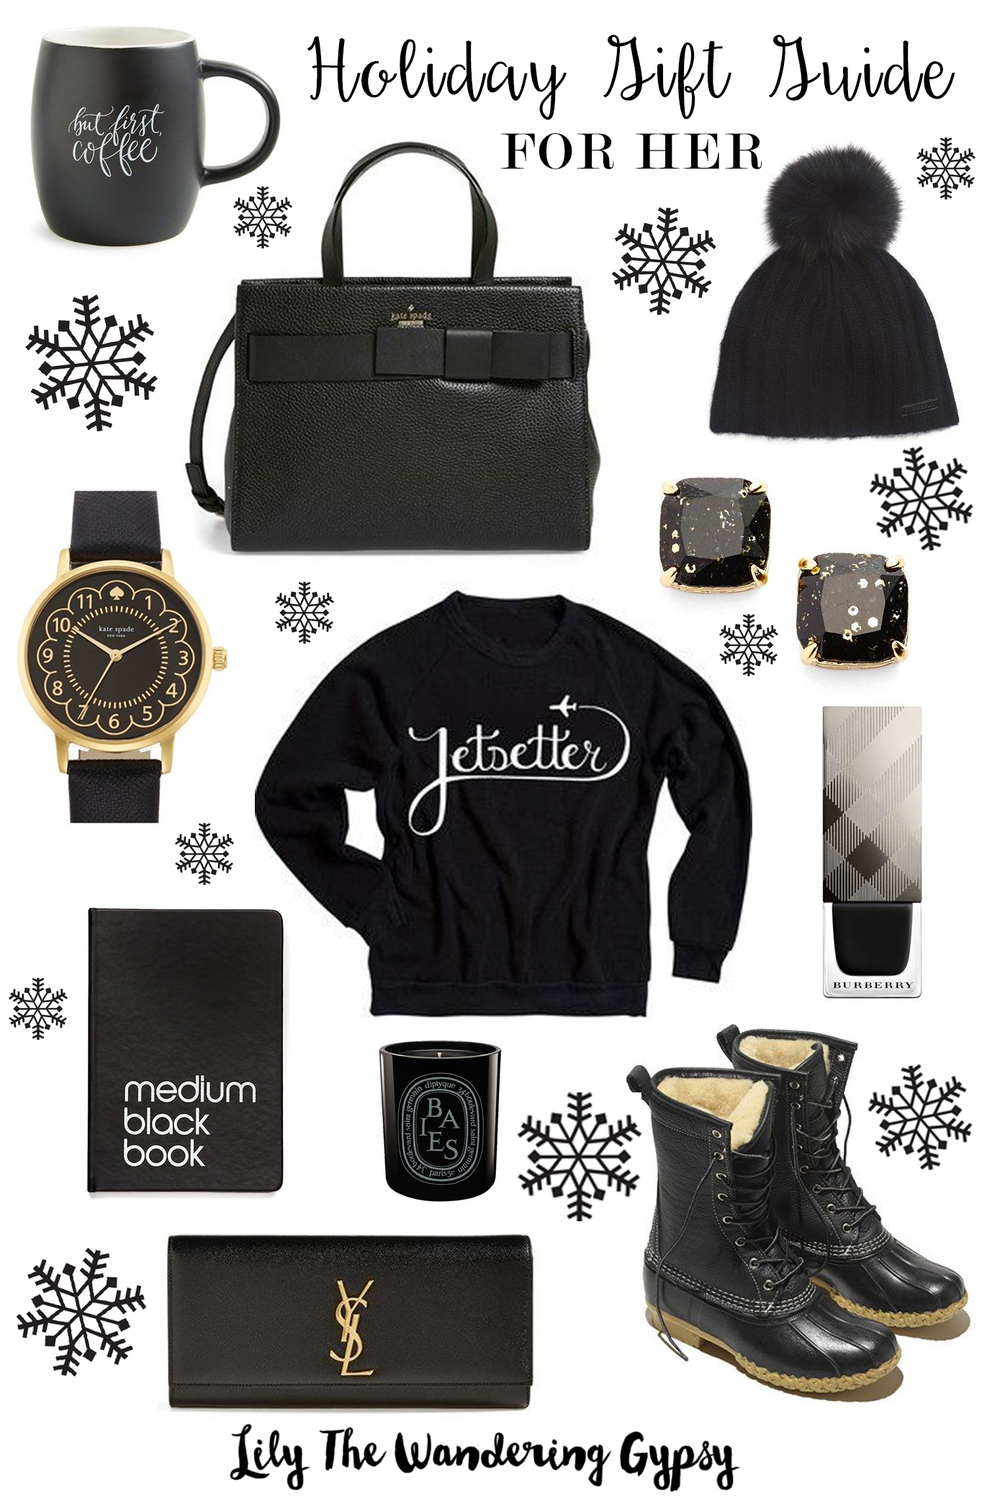 Black and White Gift Guide For Her